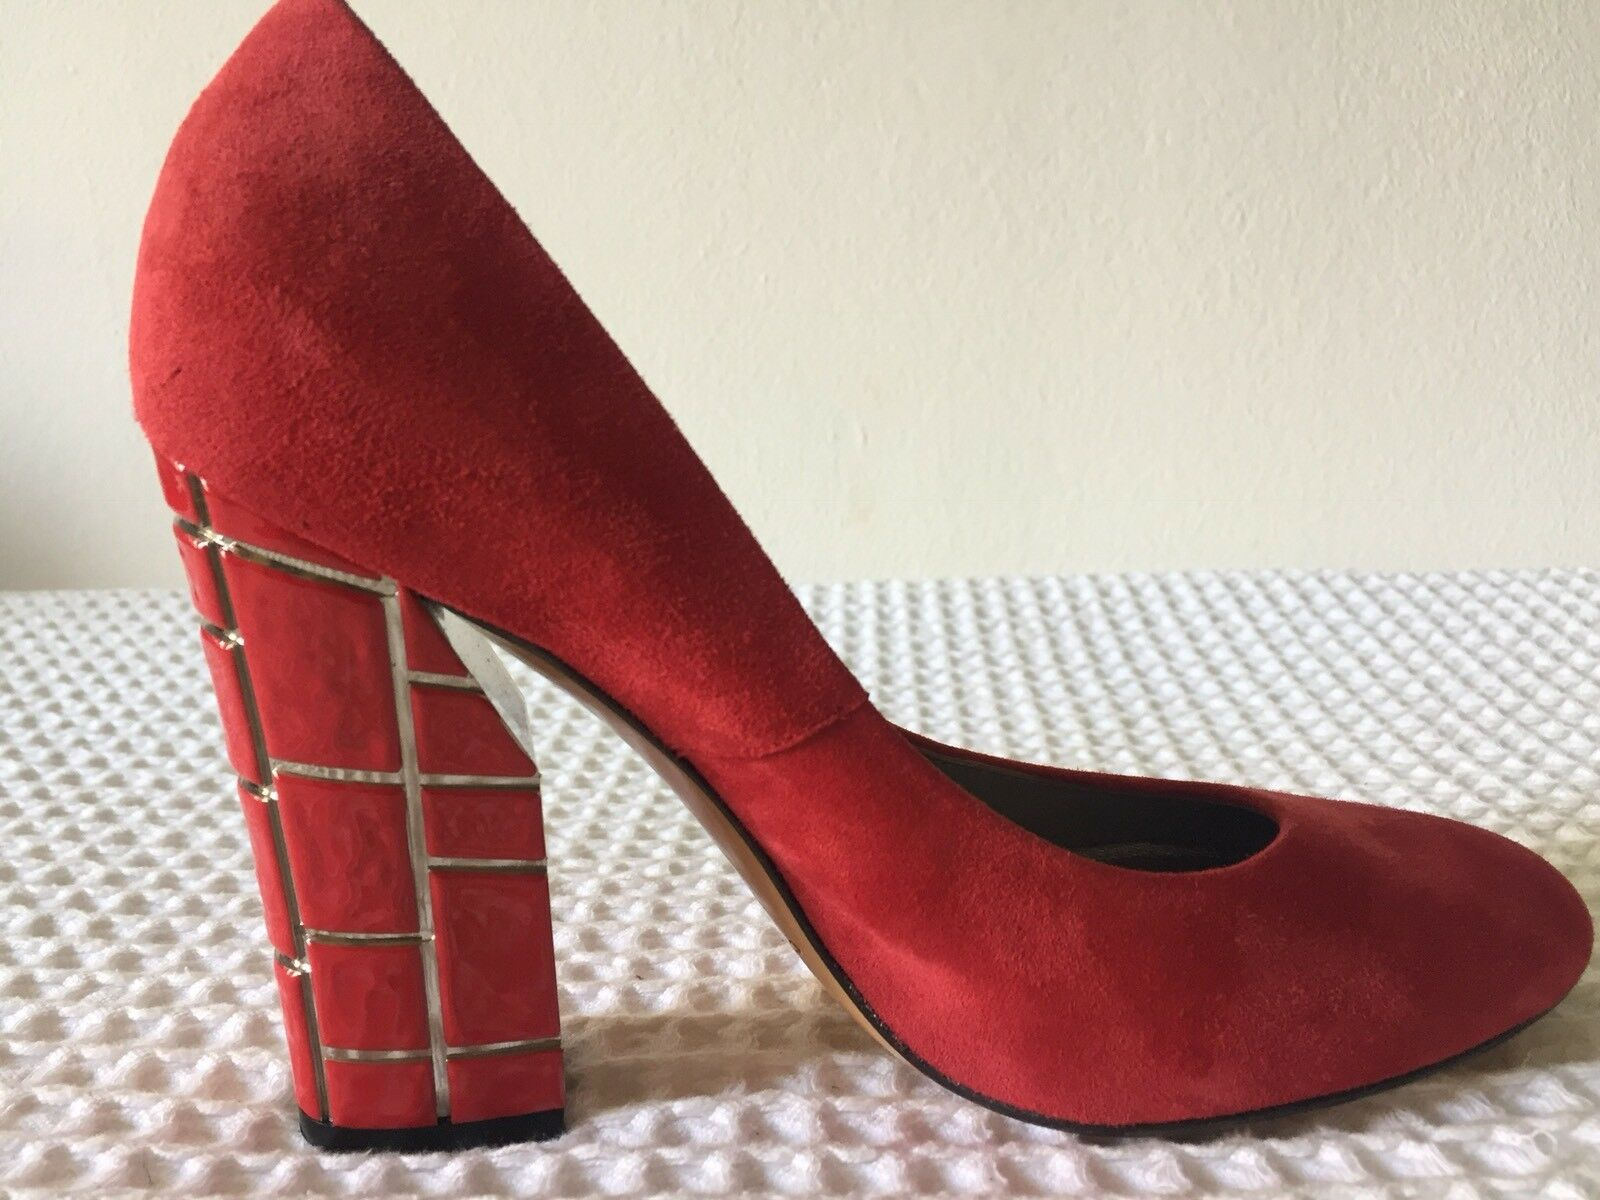 CASADEI RED SUEDE with Unique heel detailing  SZ US 7, UK 4, EU 37